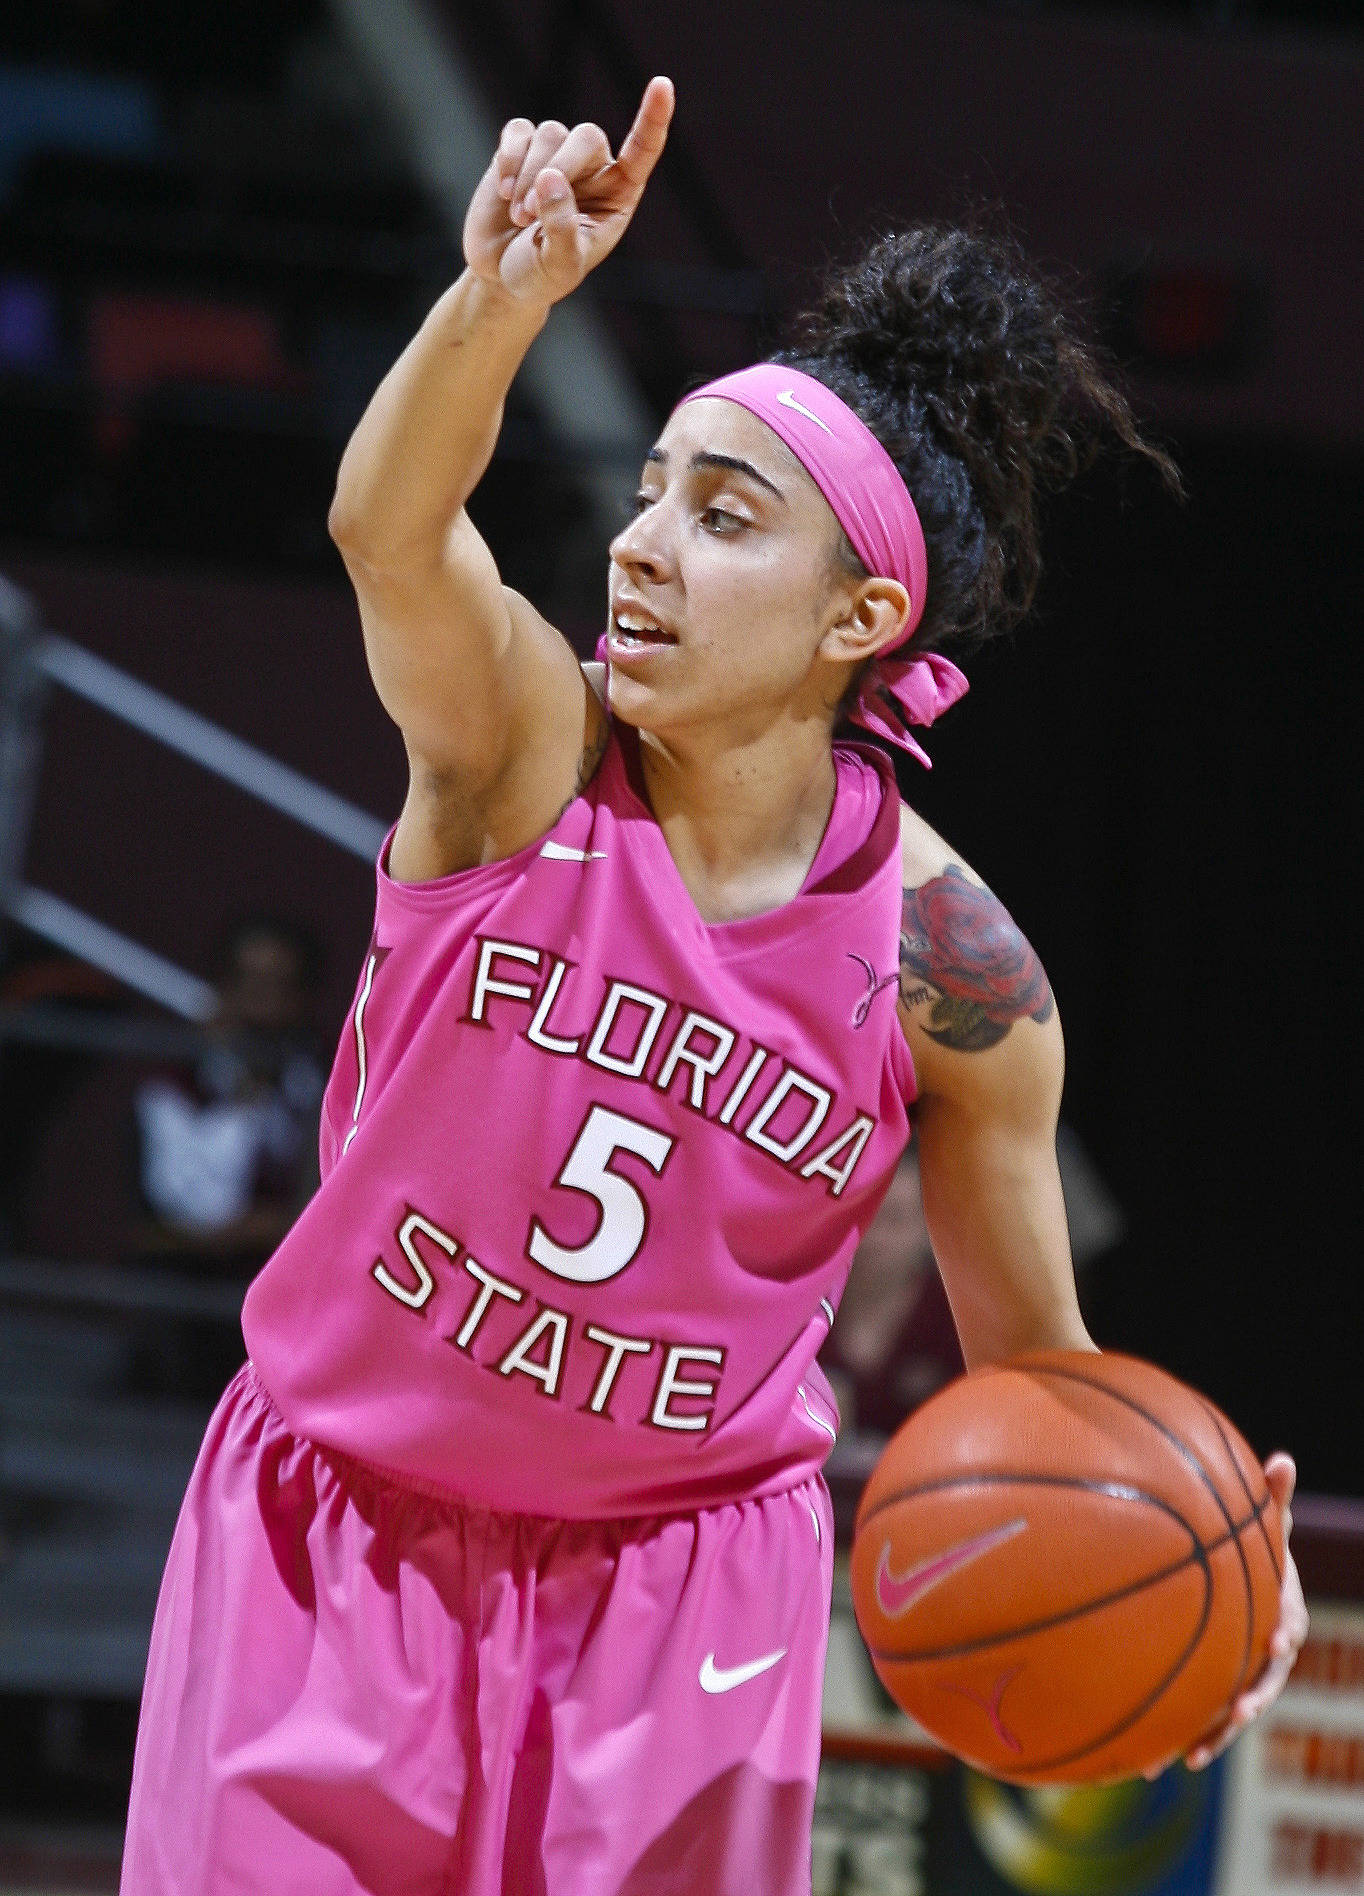 Florida State Seminoles guard Cheetah Delgado (5) dribbles the ball in the second half against the Boston College Eagles. Mandatory Credit: Phil Sears-USA TODAY Sports